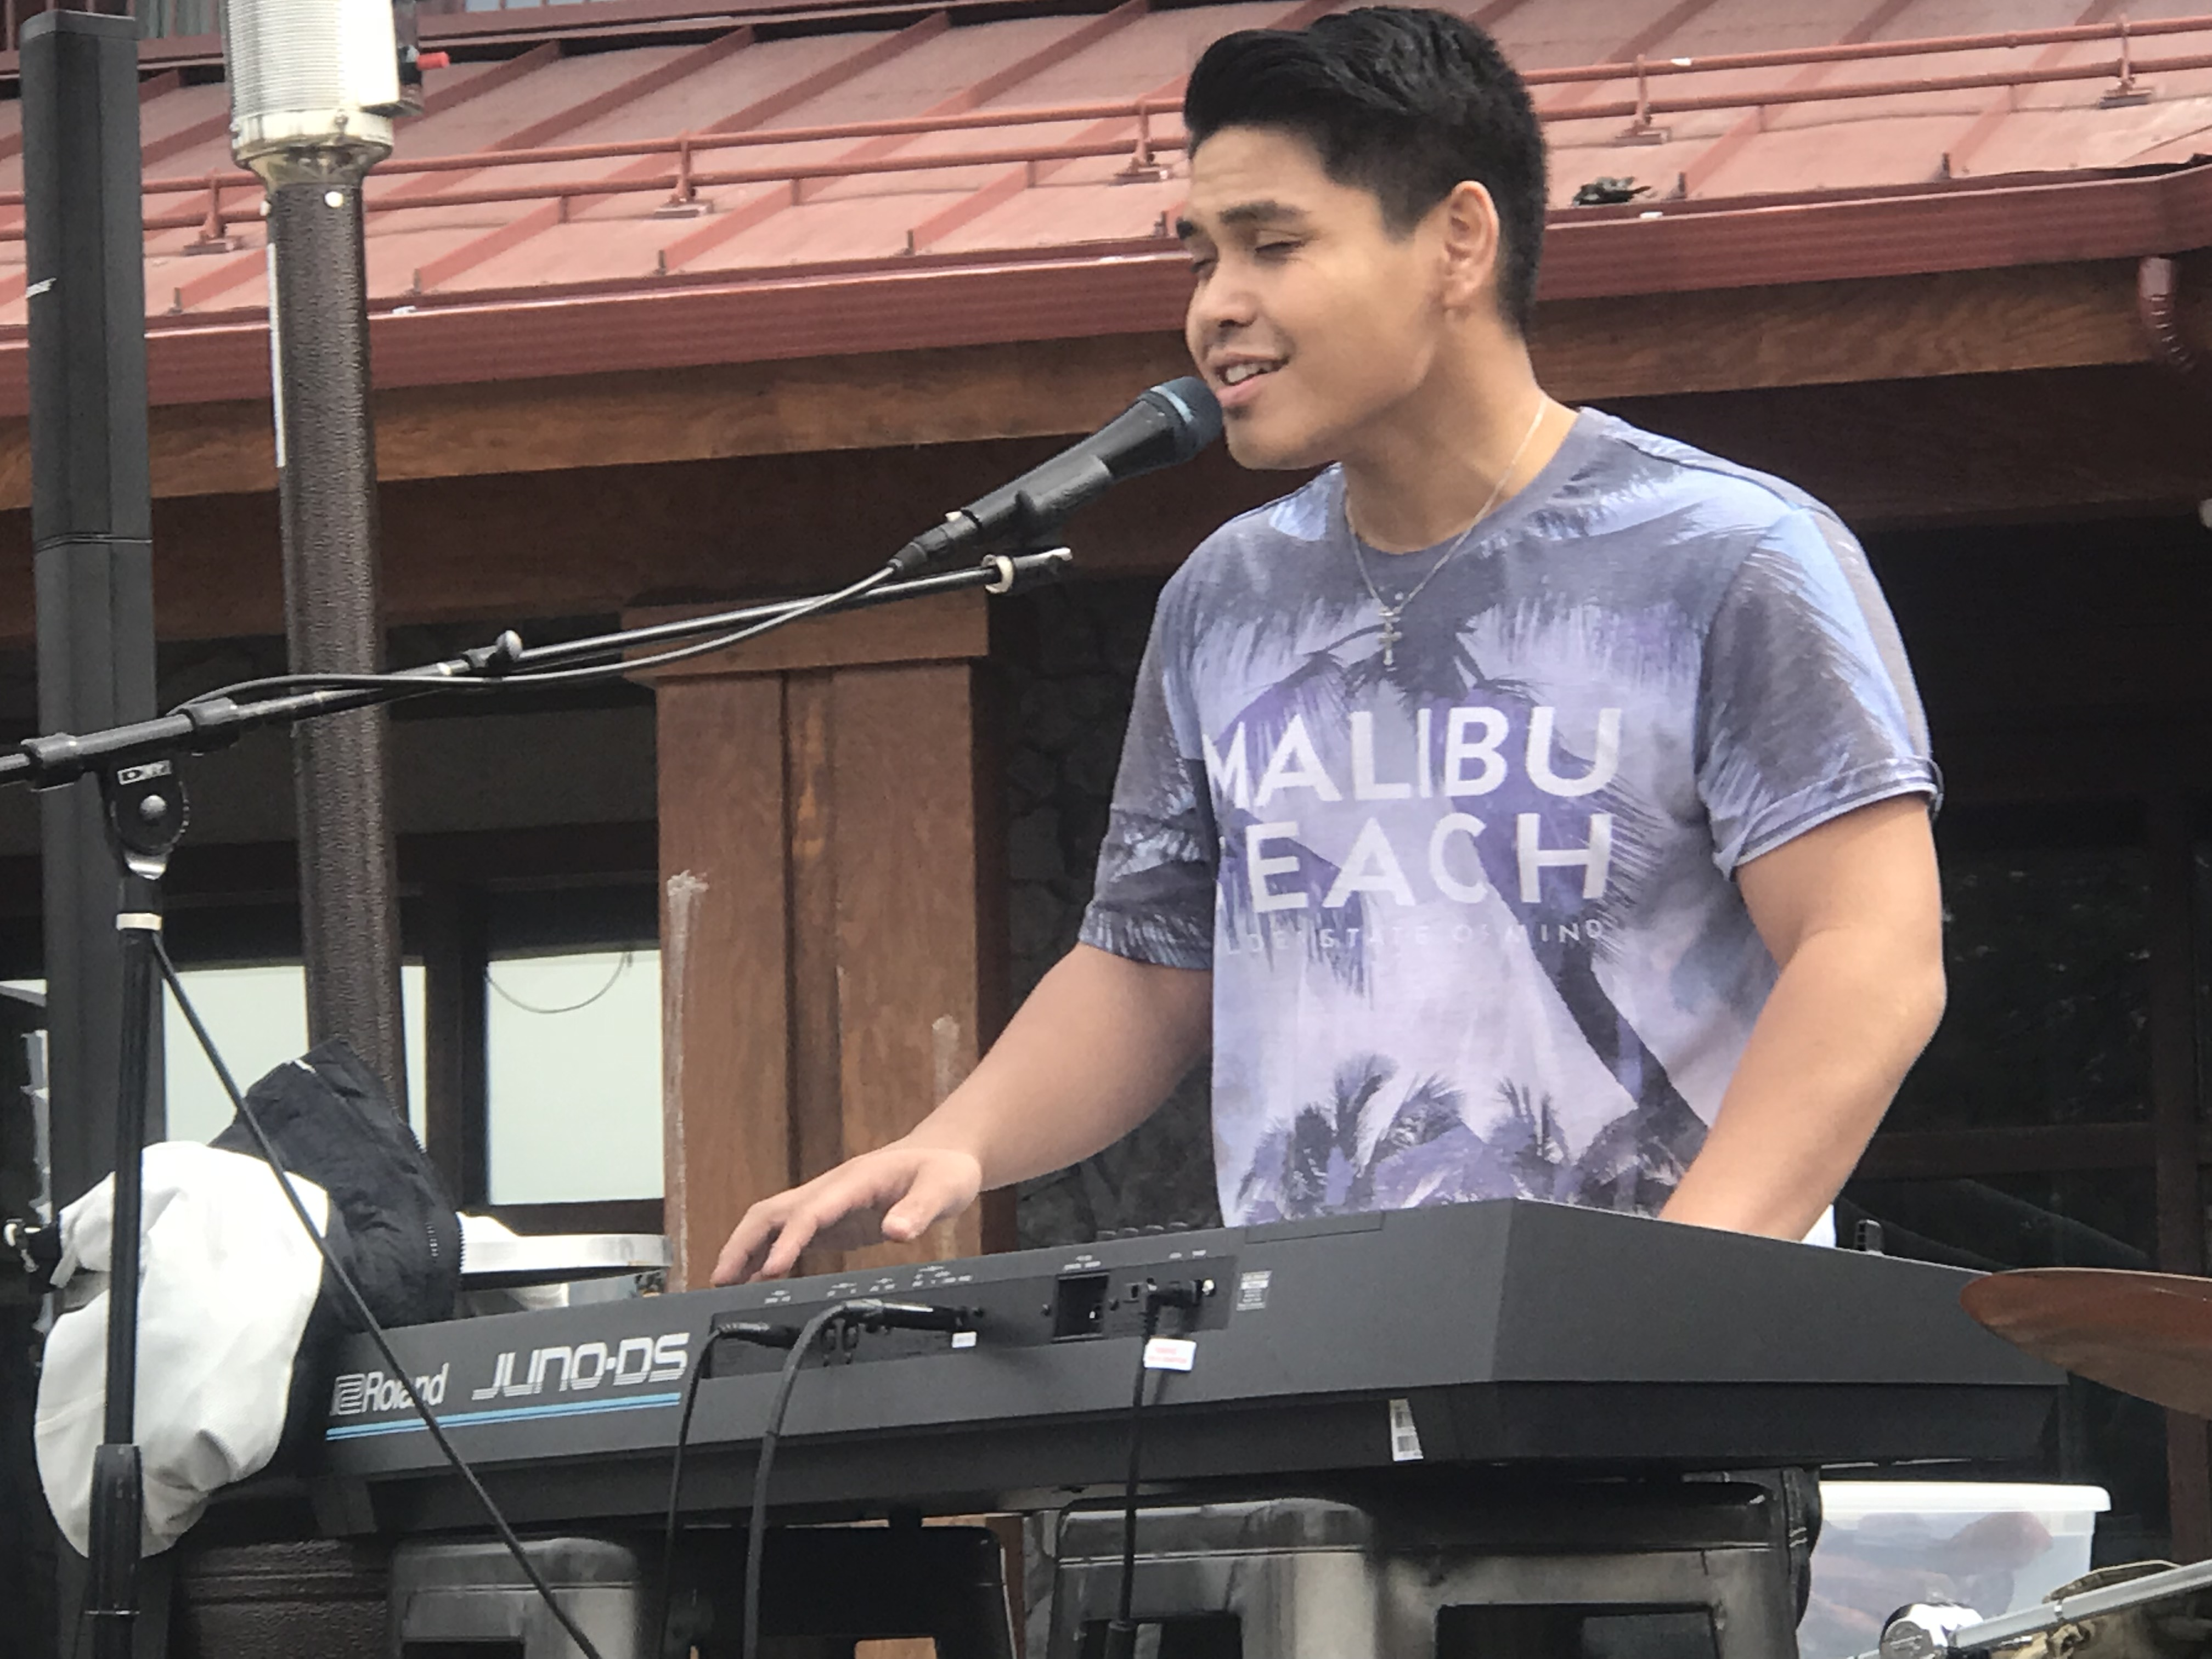 Daniel playing keyboards